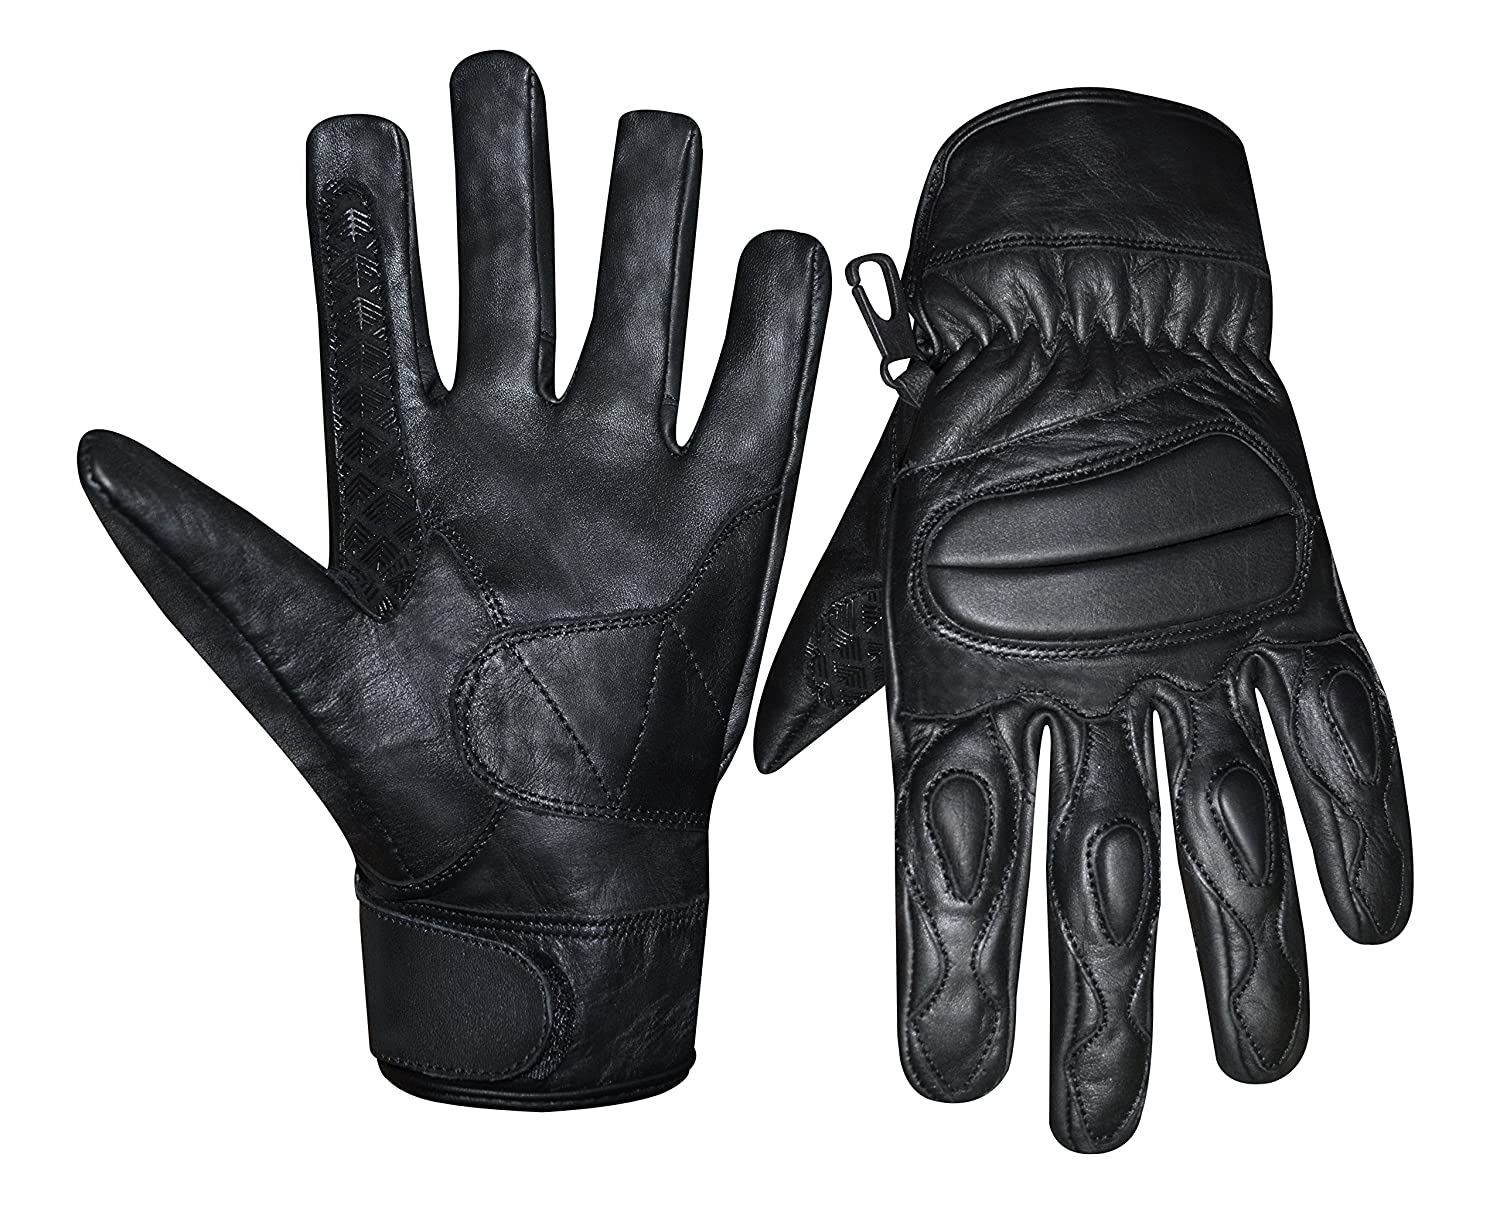 Prime Sports Mens Real Genuine Leather Motorcycle Racing Knuckle Protection Gloves Medium, Black